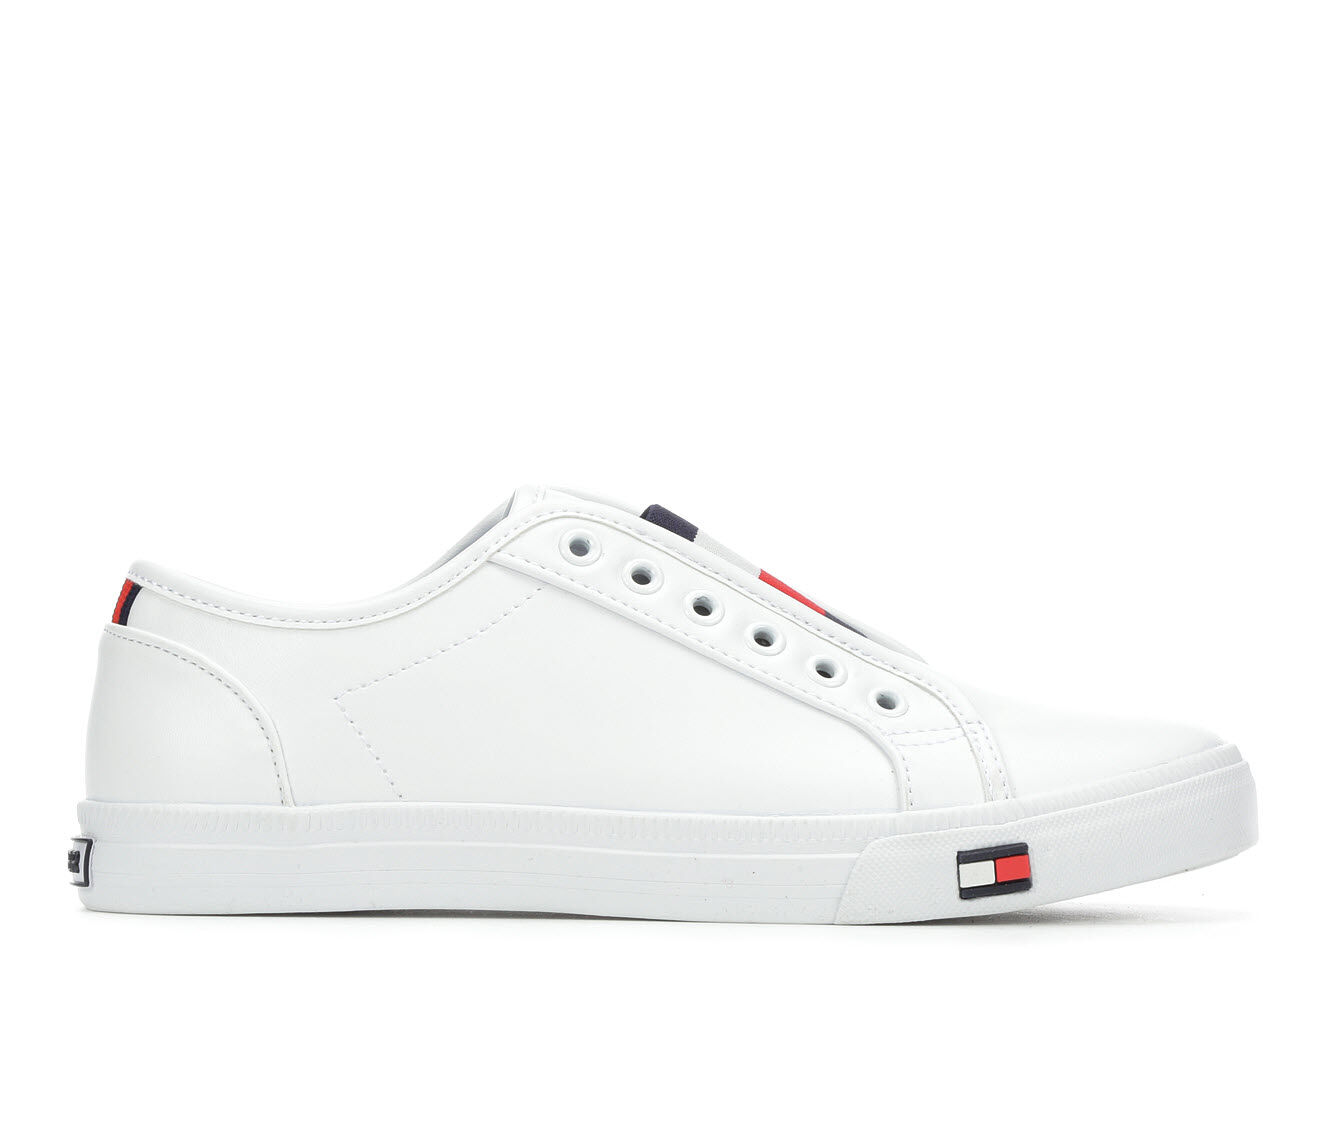 Women's Tommy Hilfiger Anni Sneakers White/Signature